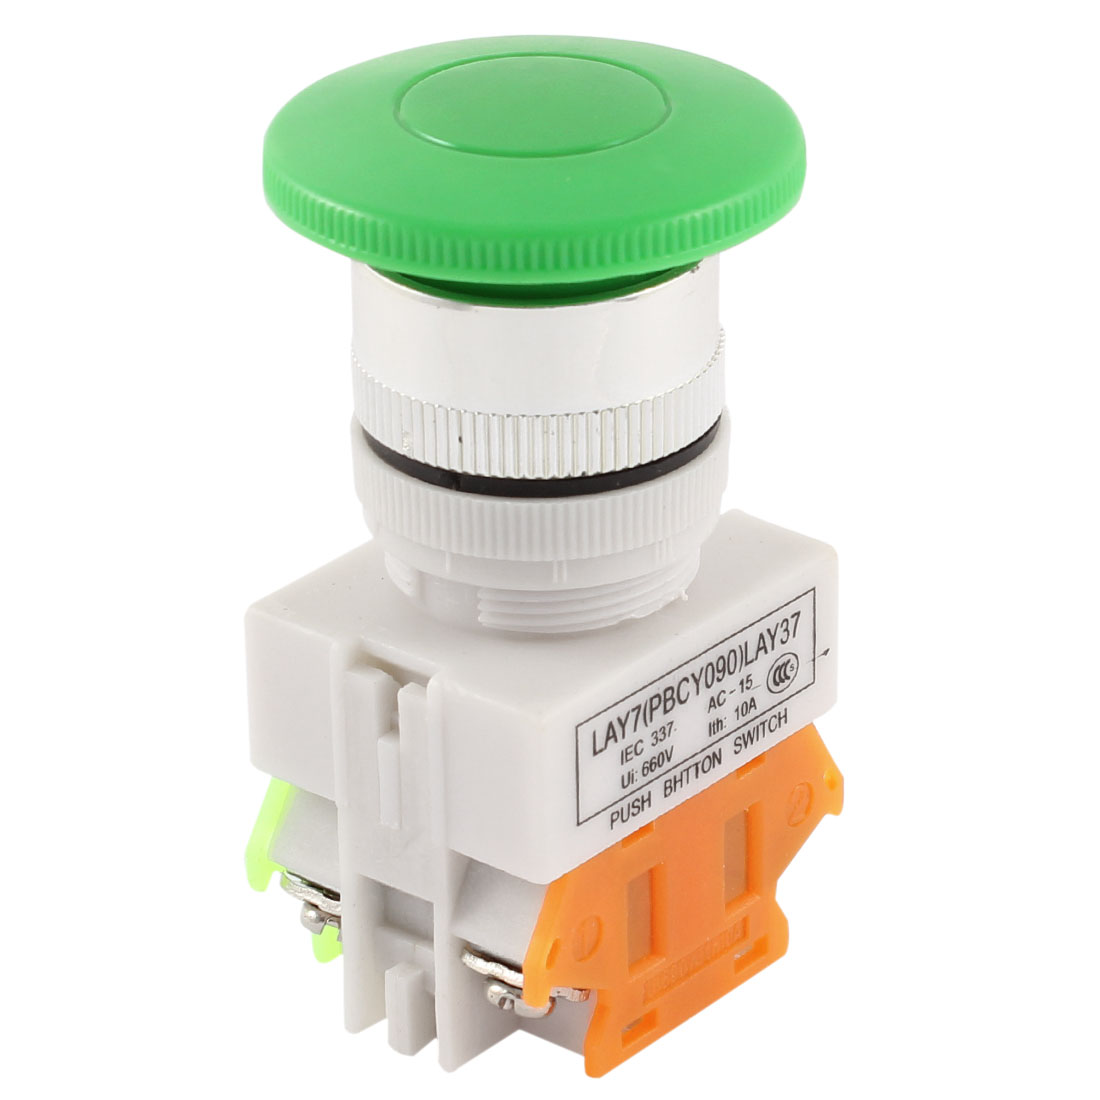 660V 10A 23mm Dia Threaded Mushroom Head Momentary Push Button Switch - image 3 of 3